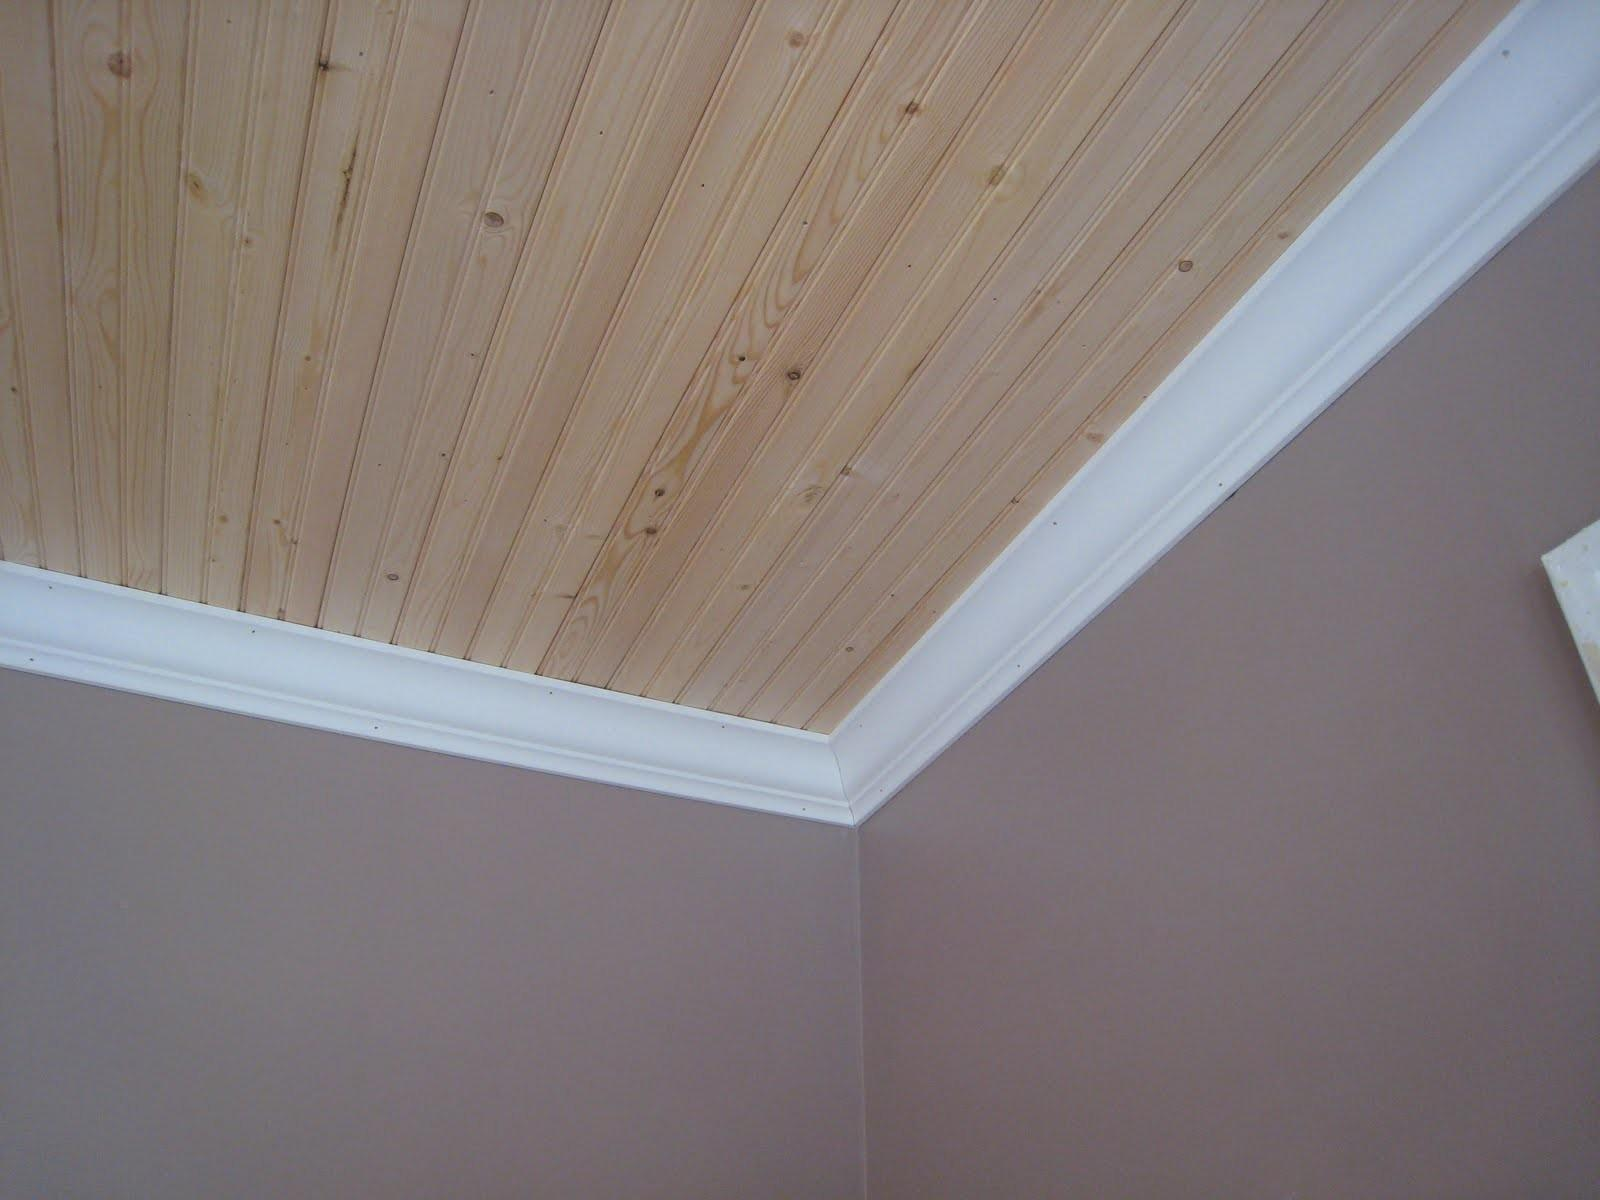 Ceiling Molding Joy Studio Design Best